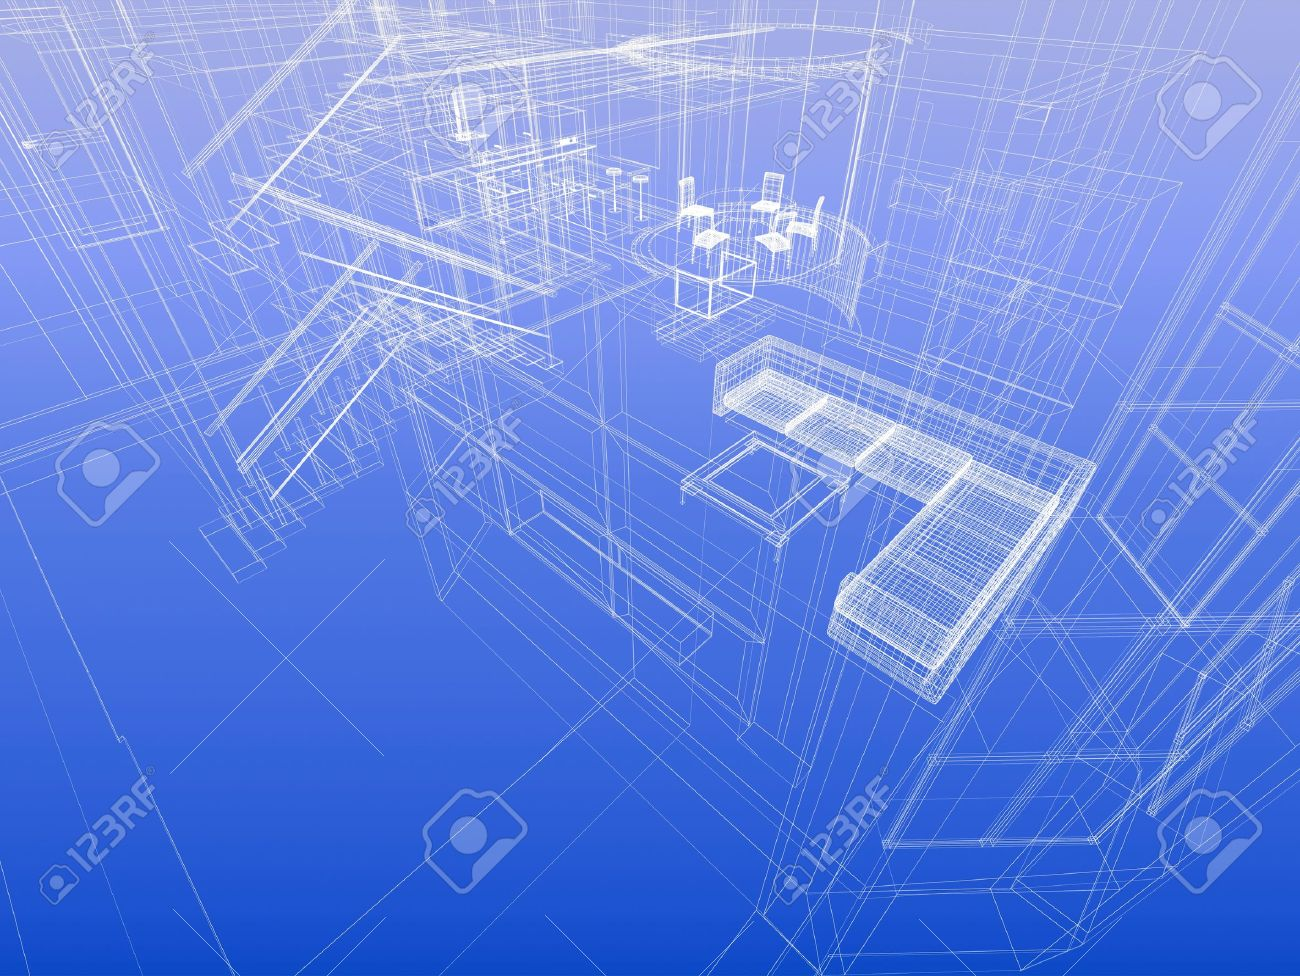 House concept. Wireframe interior of a house. Blueprint style. 3d-rendering Stock Photo - 12507767